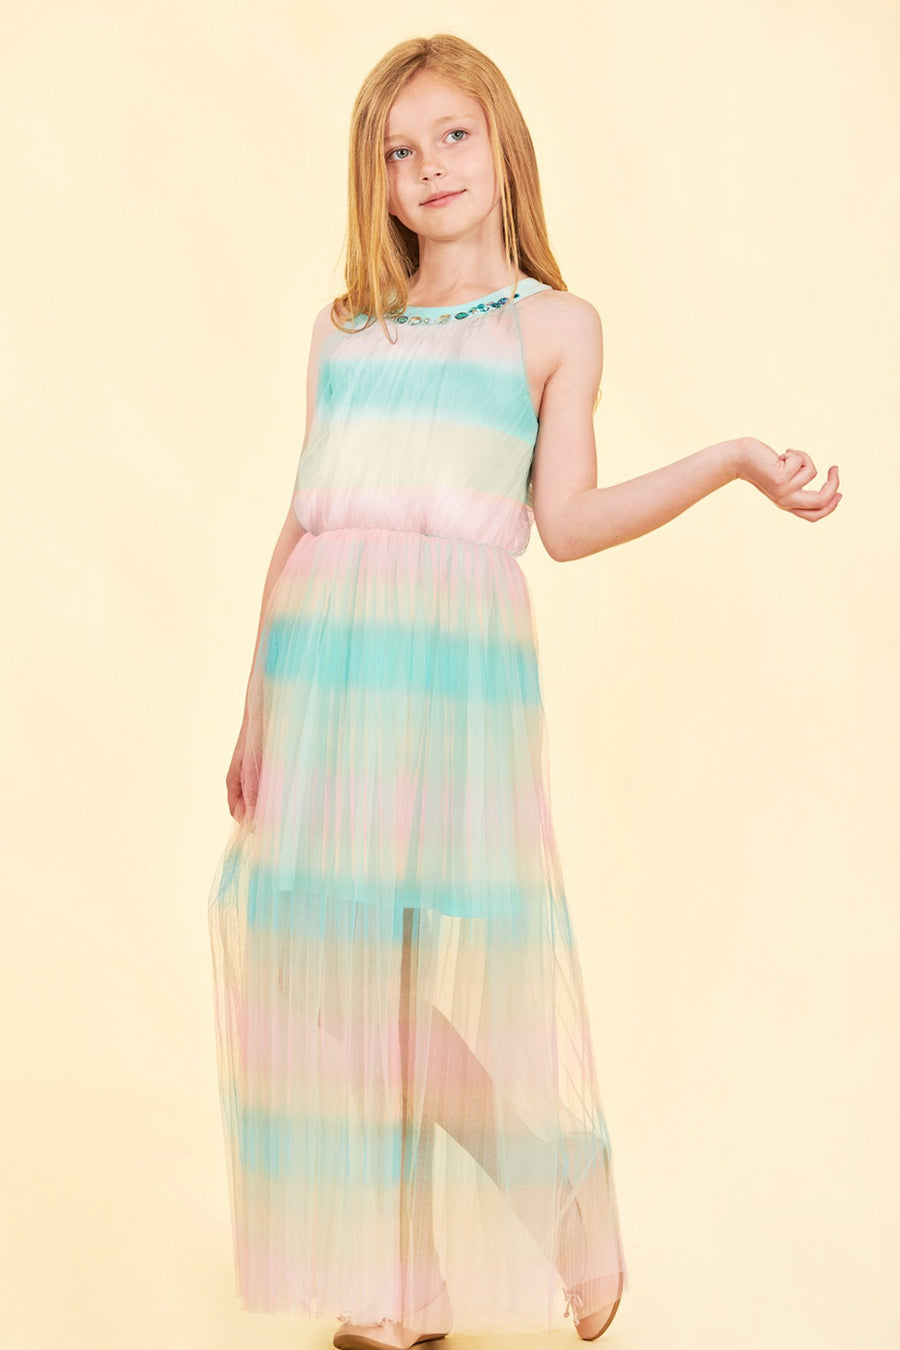 TRULY ME TWEEN GIRLS RAINBOW PLEATED DRESS